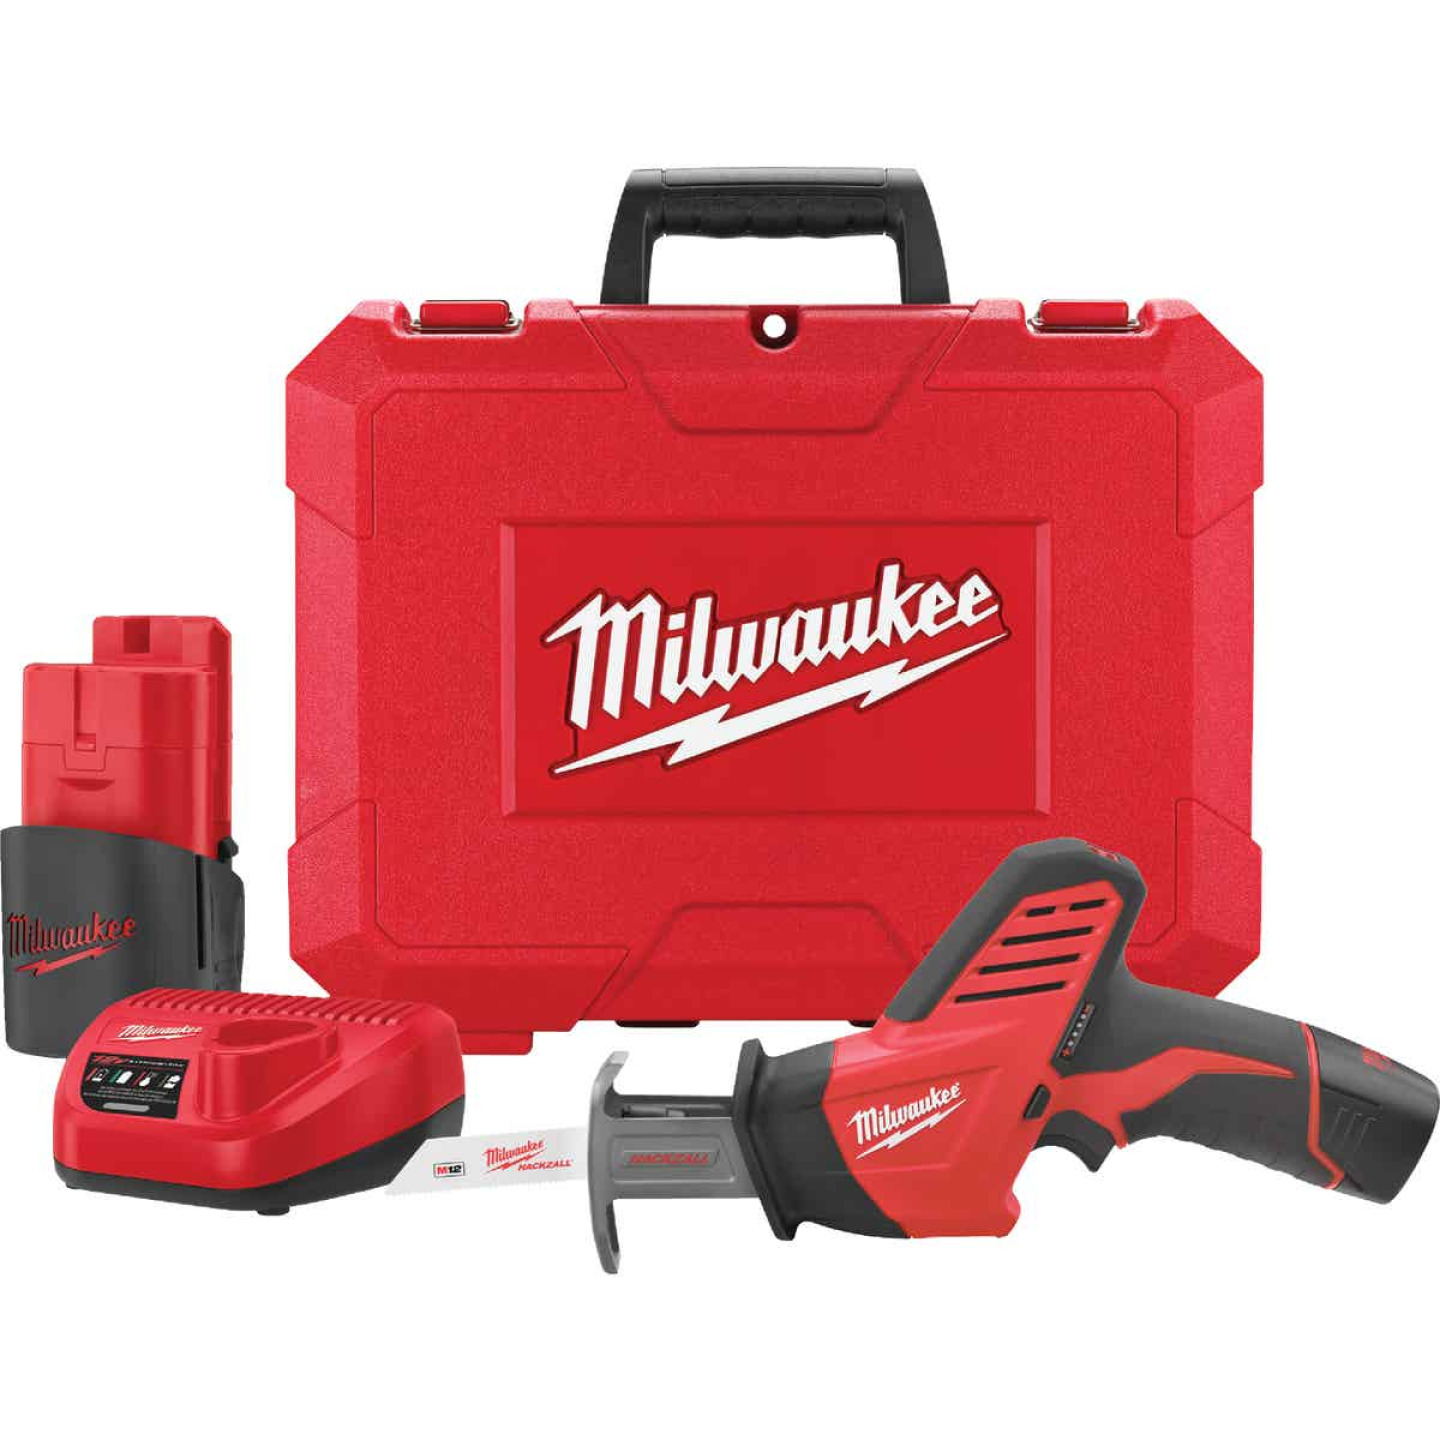 Milwaukee Hackzall M12 12 Volt Lithium-Ion Cordless Reciprocating Saw Kit Image 6